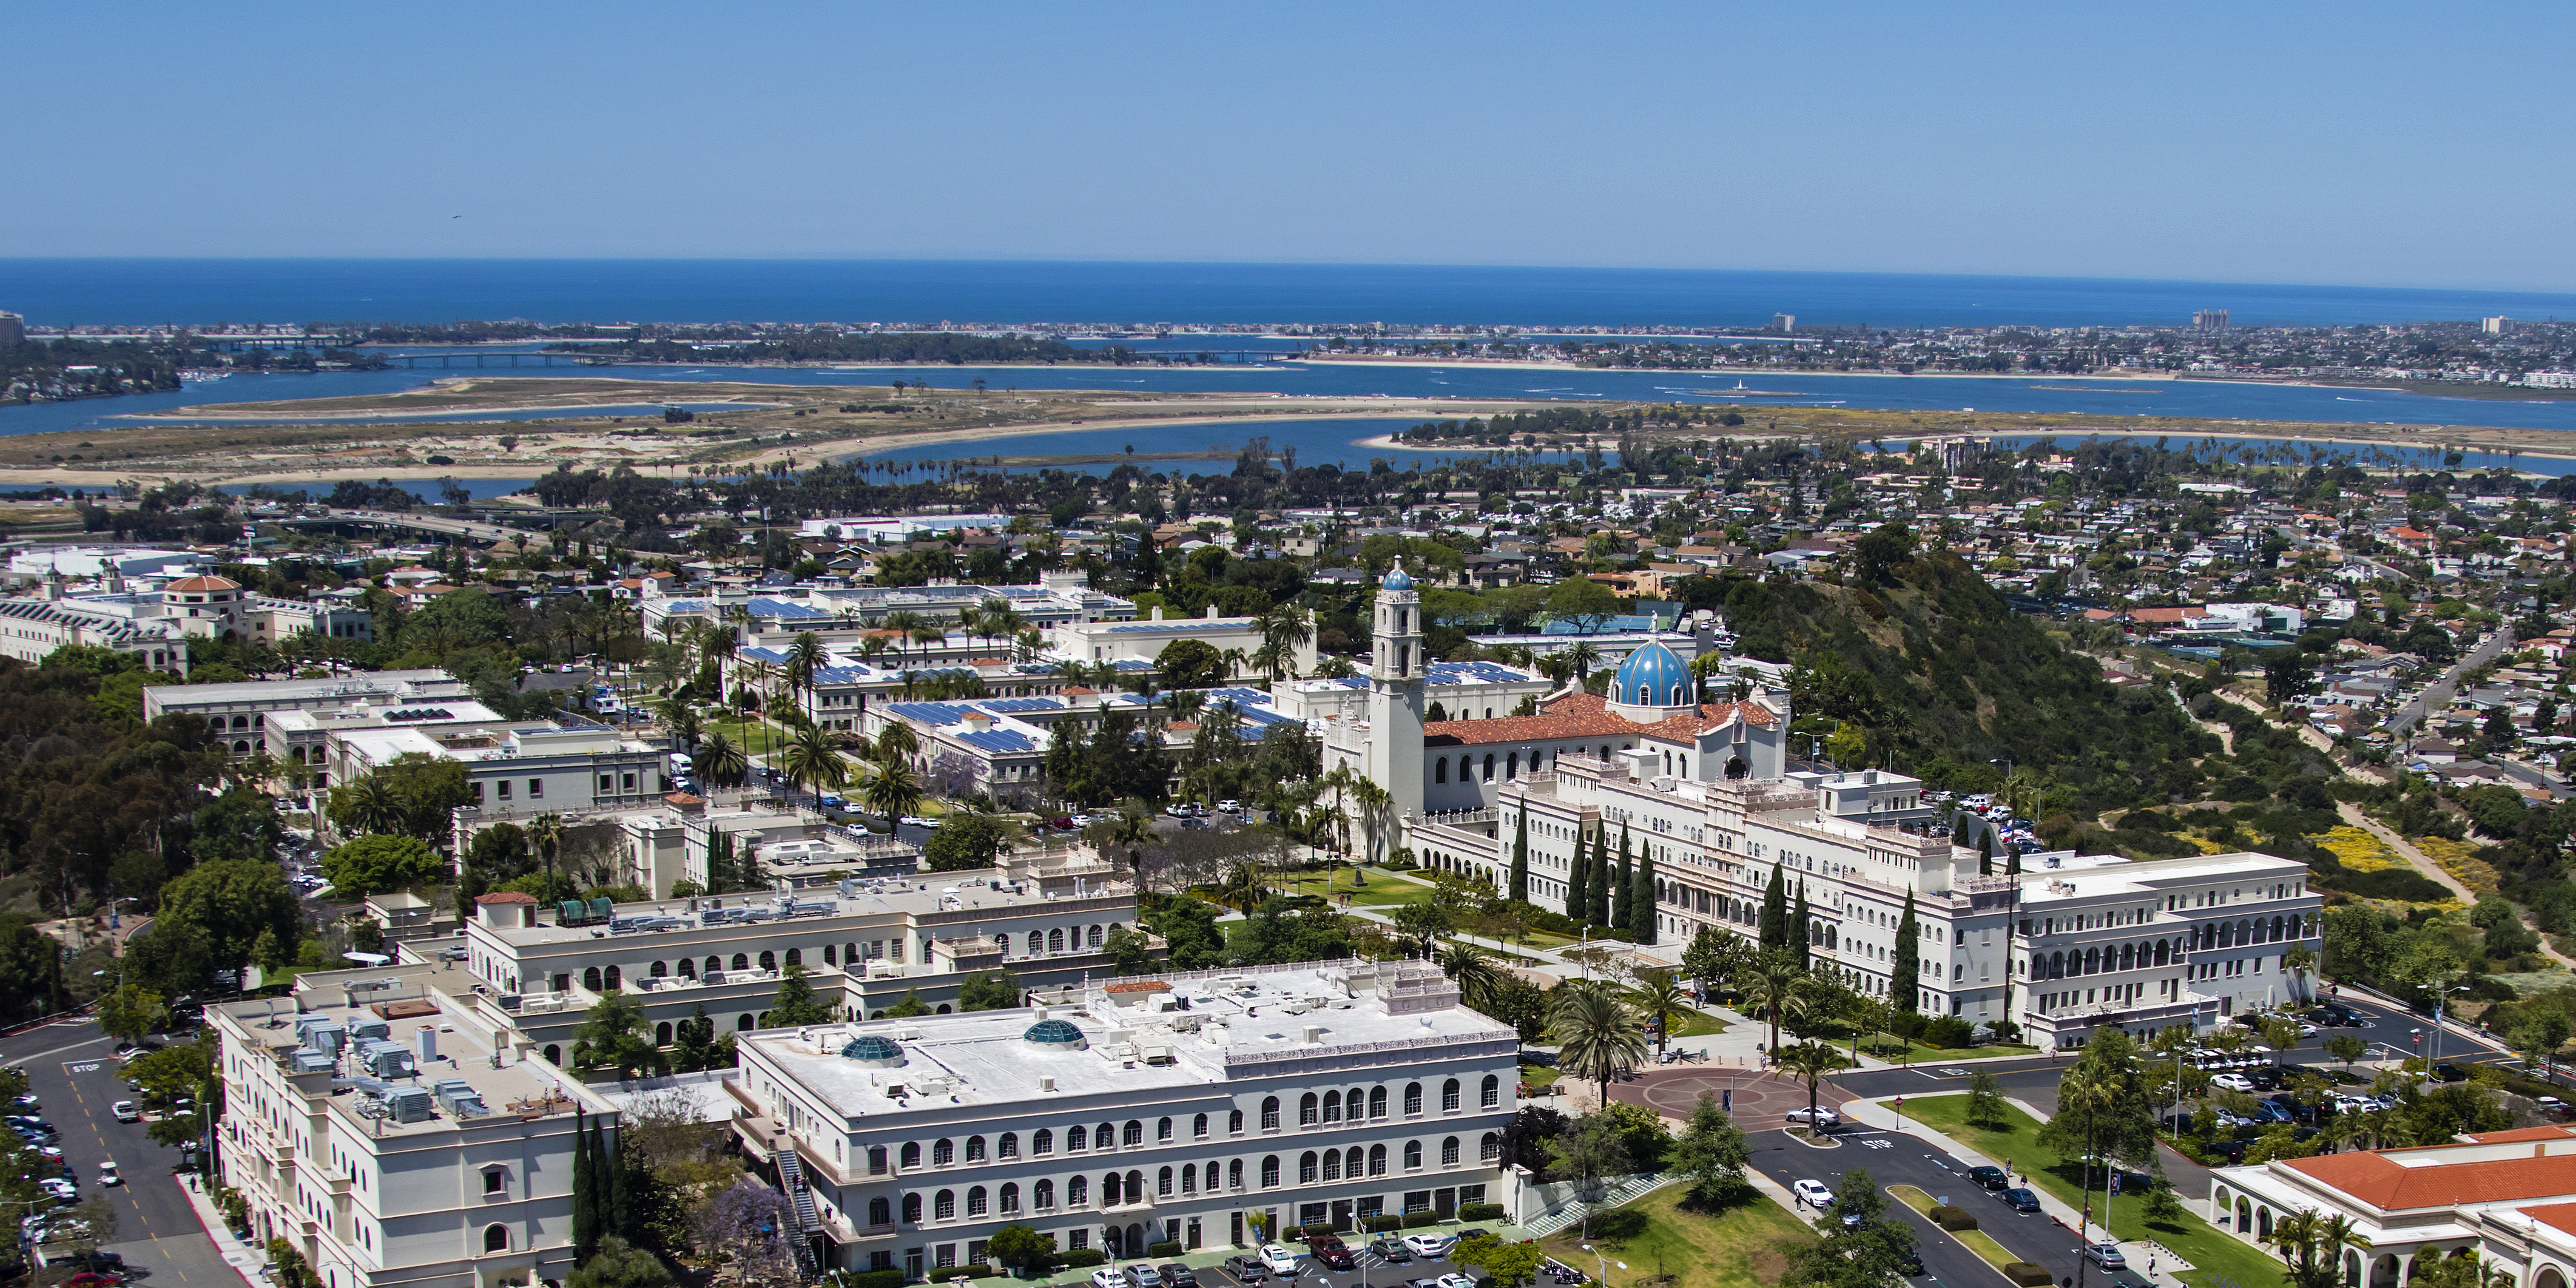 USD campus aerial shot showing the horizon and bay in the background.